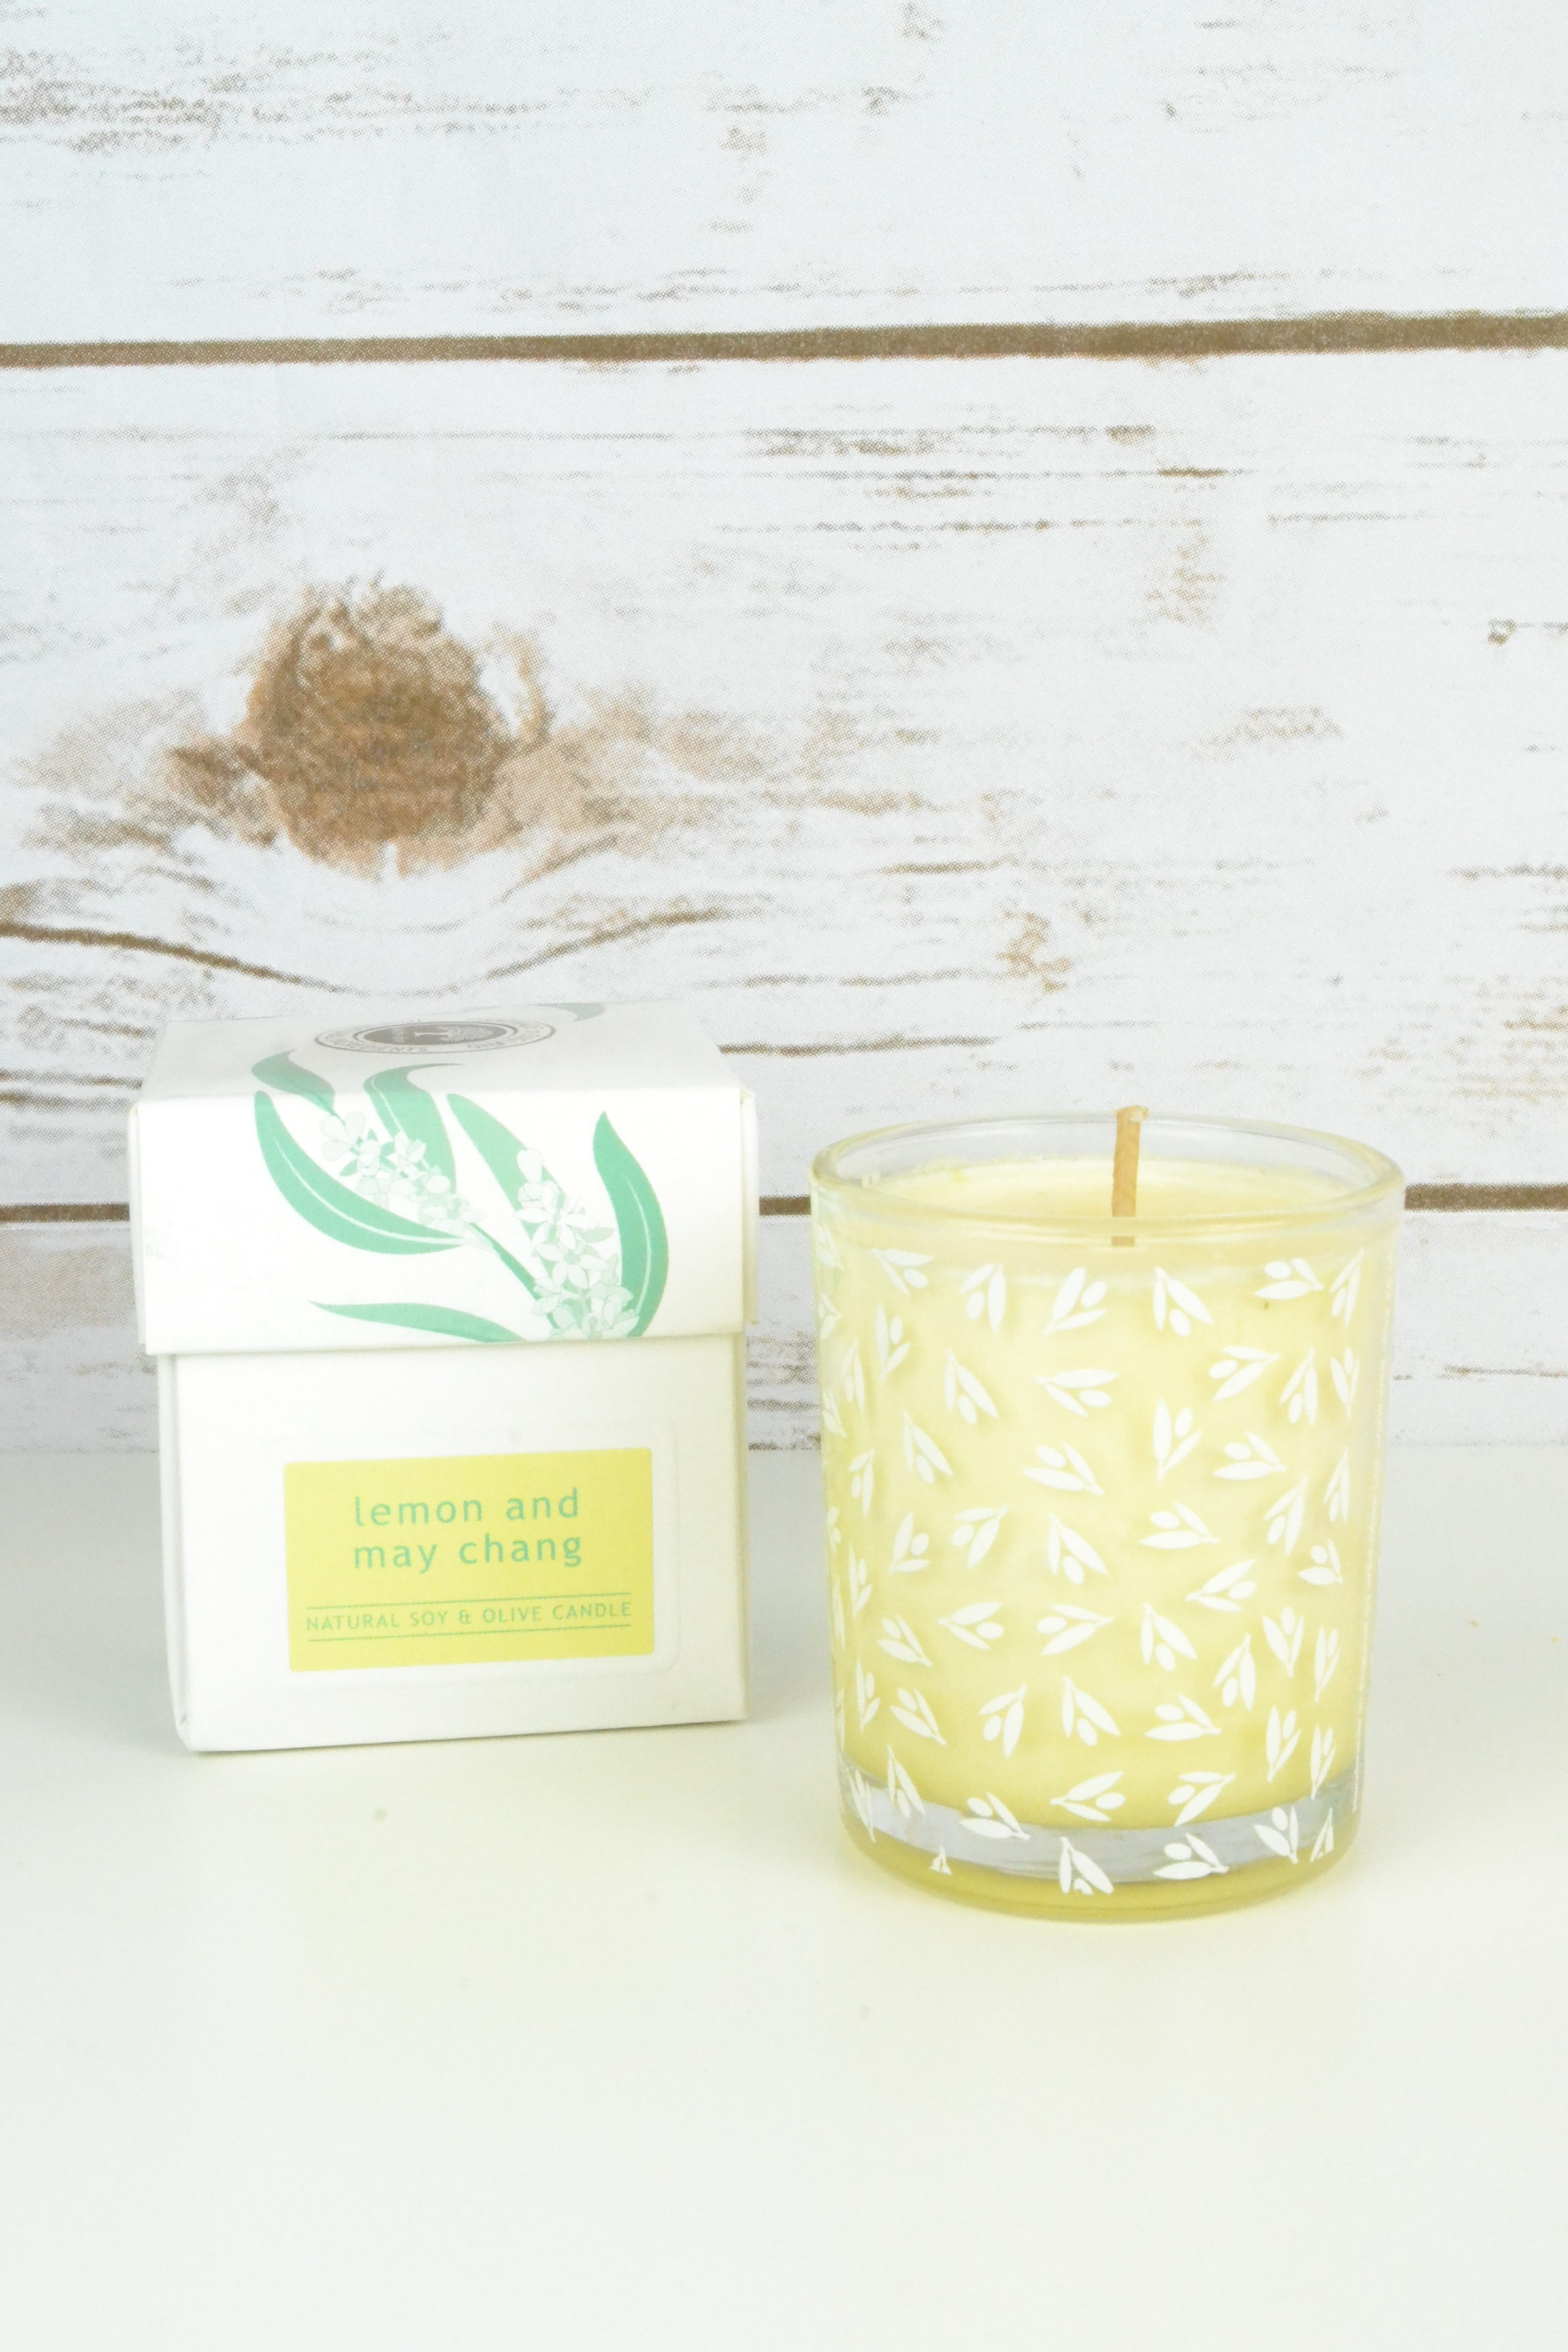 Wild Olive Lemon and May Chang Candle